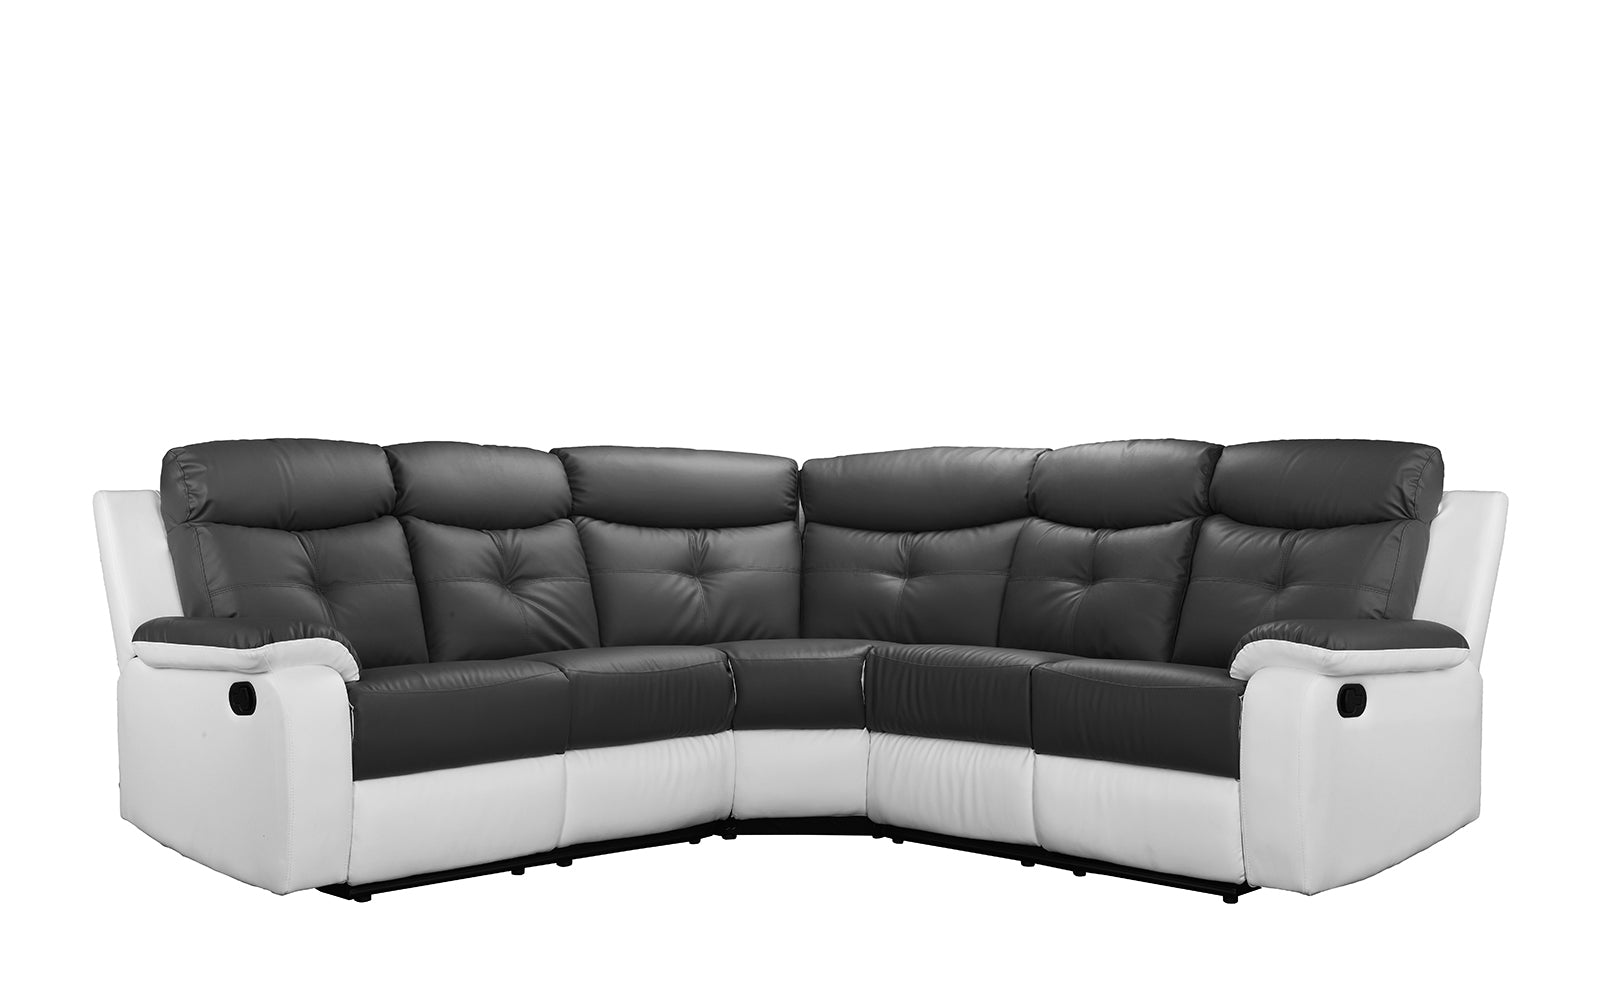 Leather Reclining Sectional Sofa Image